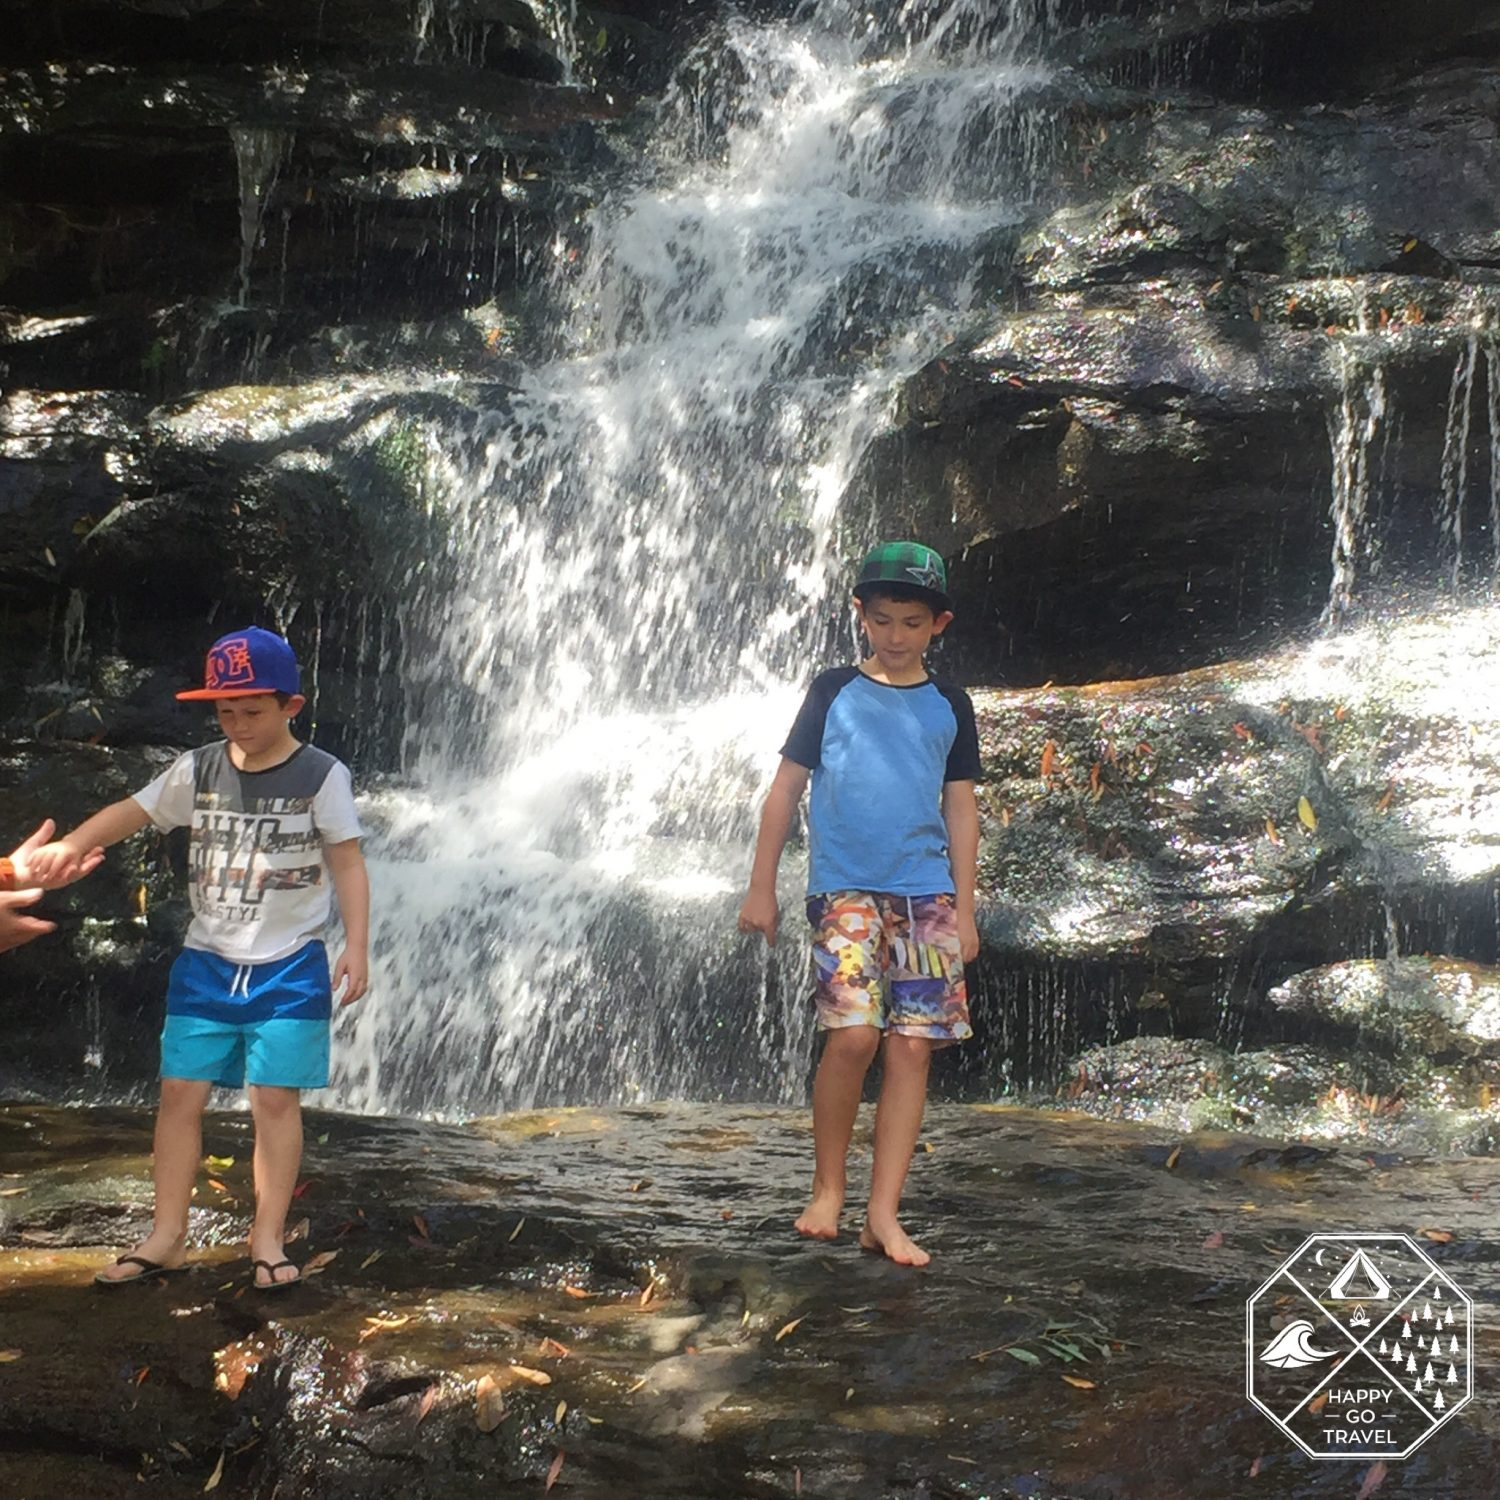 Somersby Falls Brisbane Water National Park Waterfalls | family playing in waterfalls